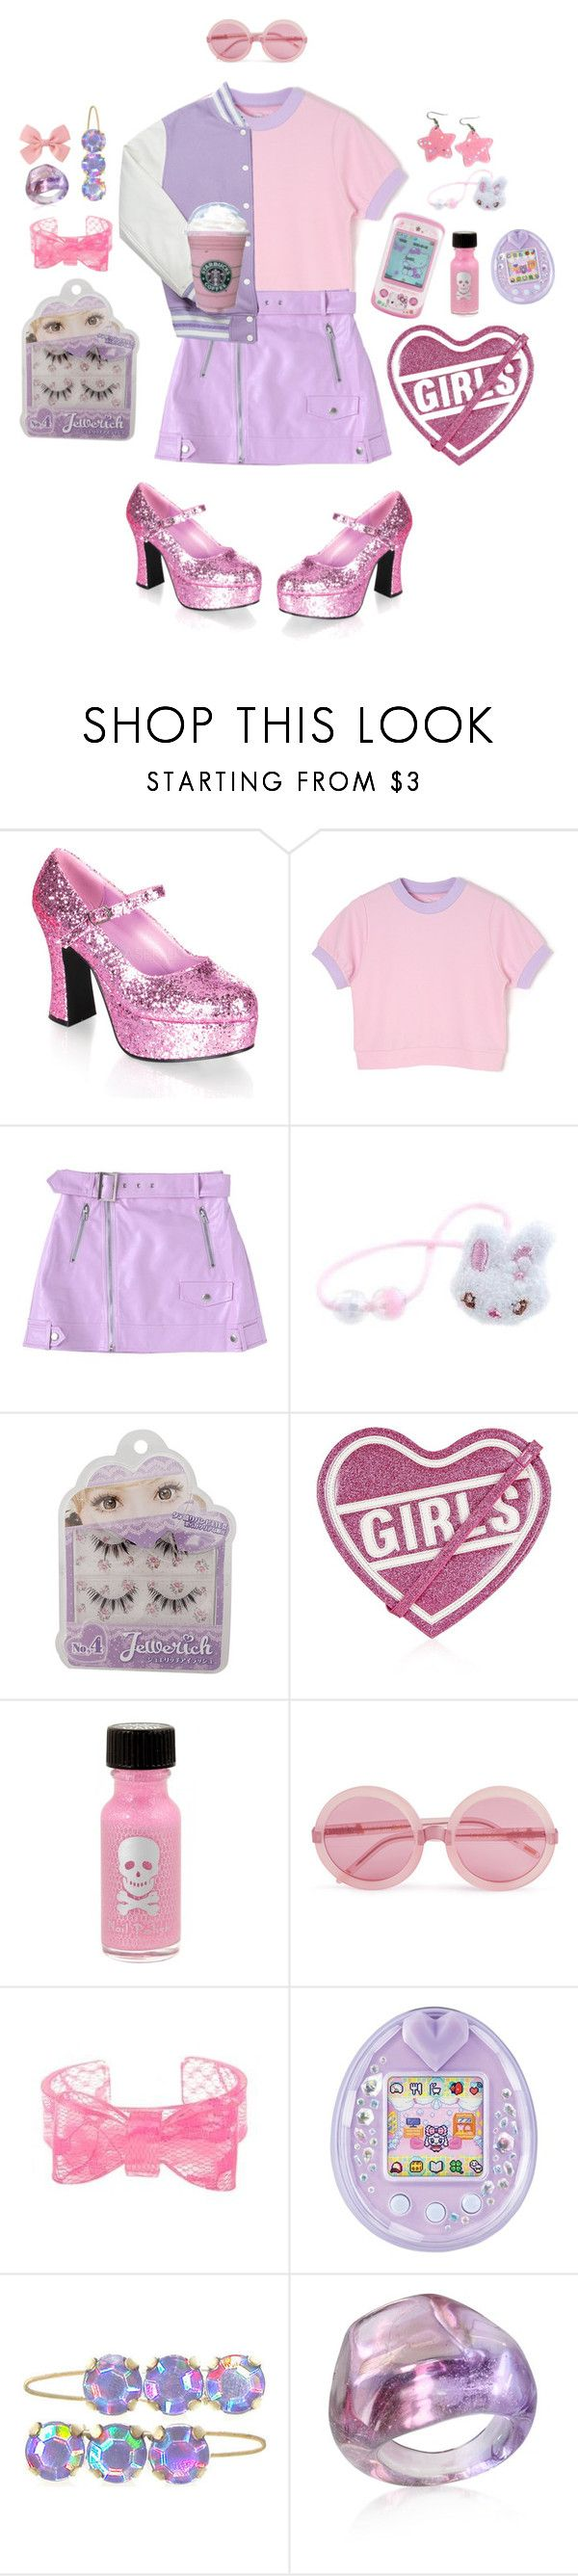 """Girls On Film"" by cuteghostie ❤ liked on Polyvore featuring INC International Concepts, Fit-to-Kill, Topshop, Hot Topic, Wildfox, Hello Kitty and Antica Murrina"